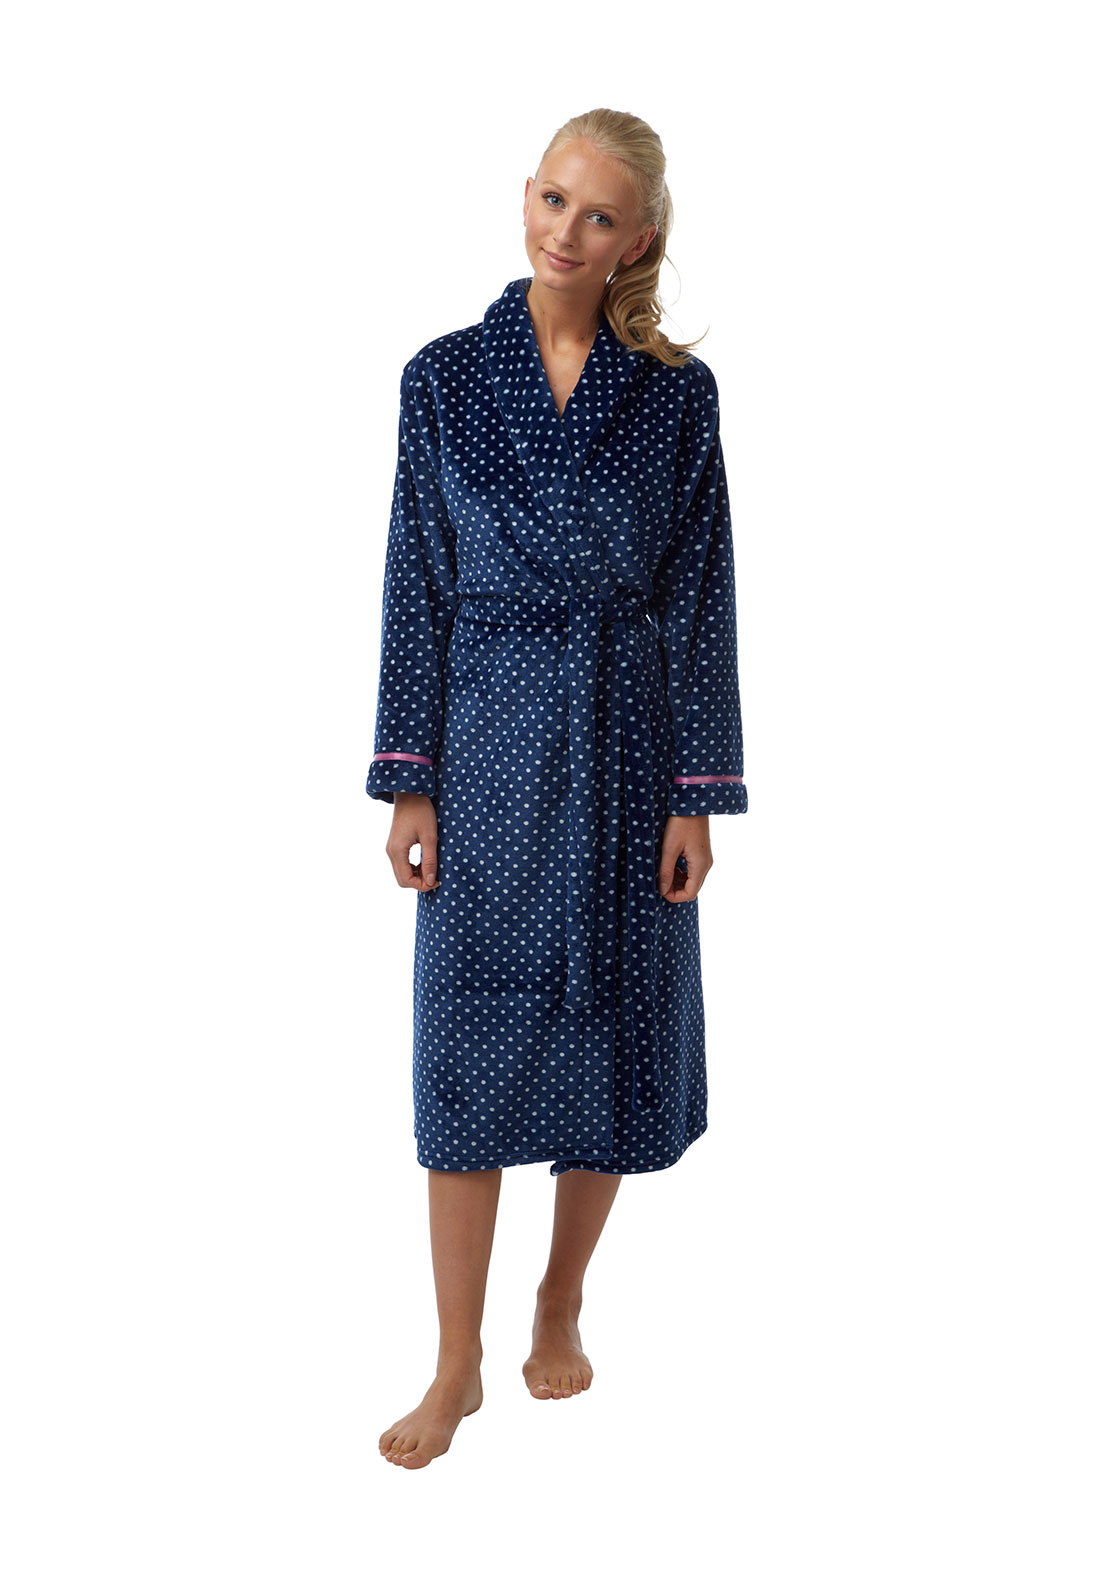 Indigo Sky Polka Dot Print Terry Dressing Gown, Navy